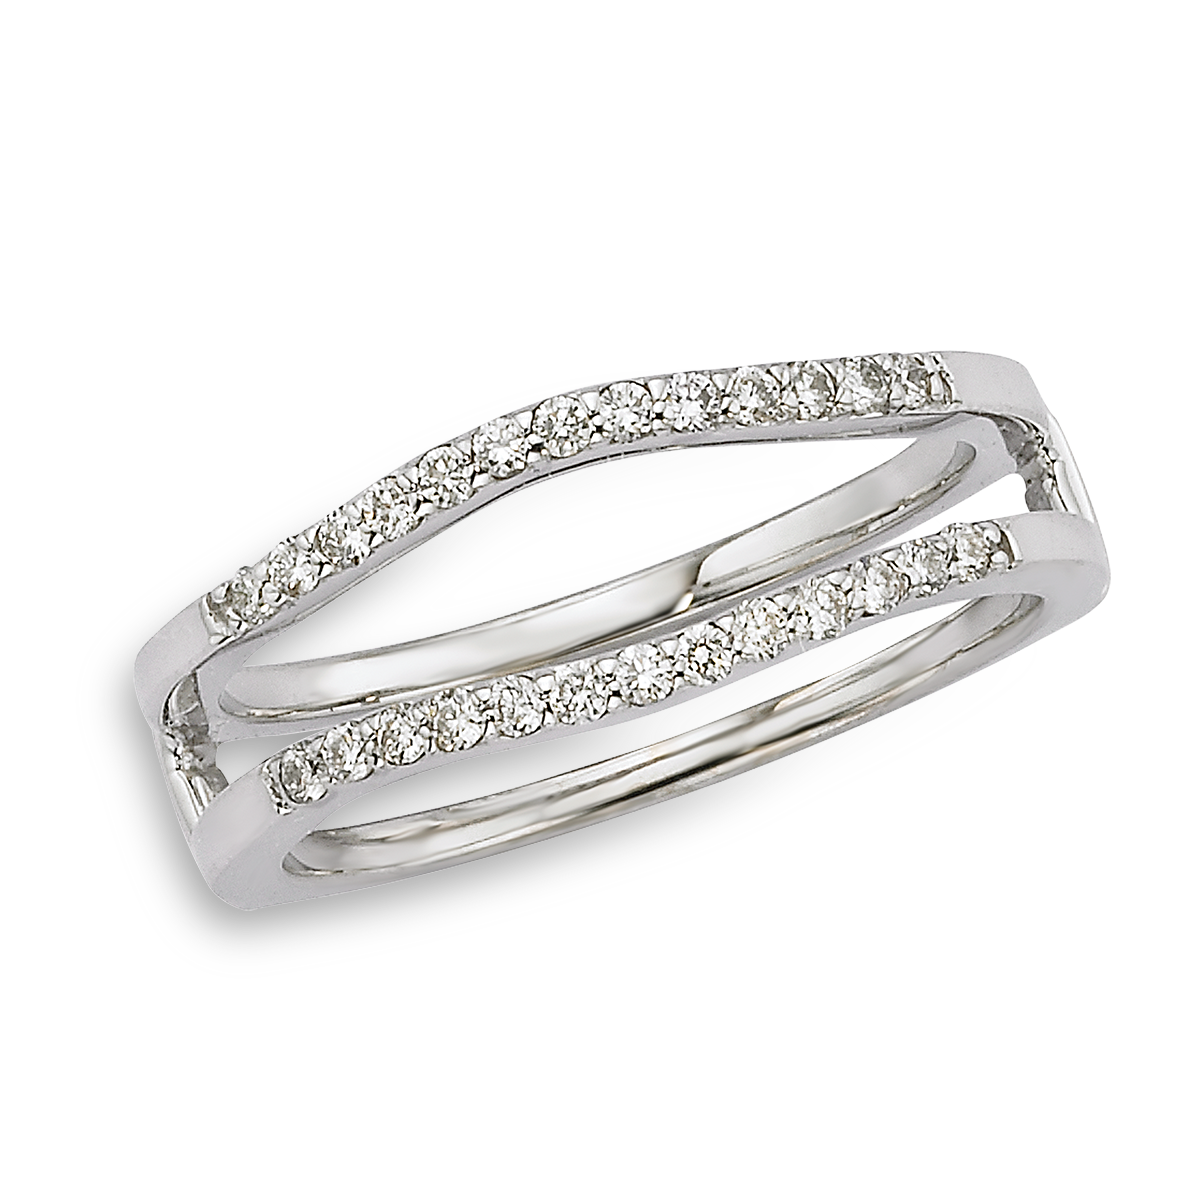 14K White Gold Insert Band